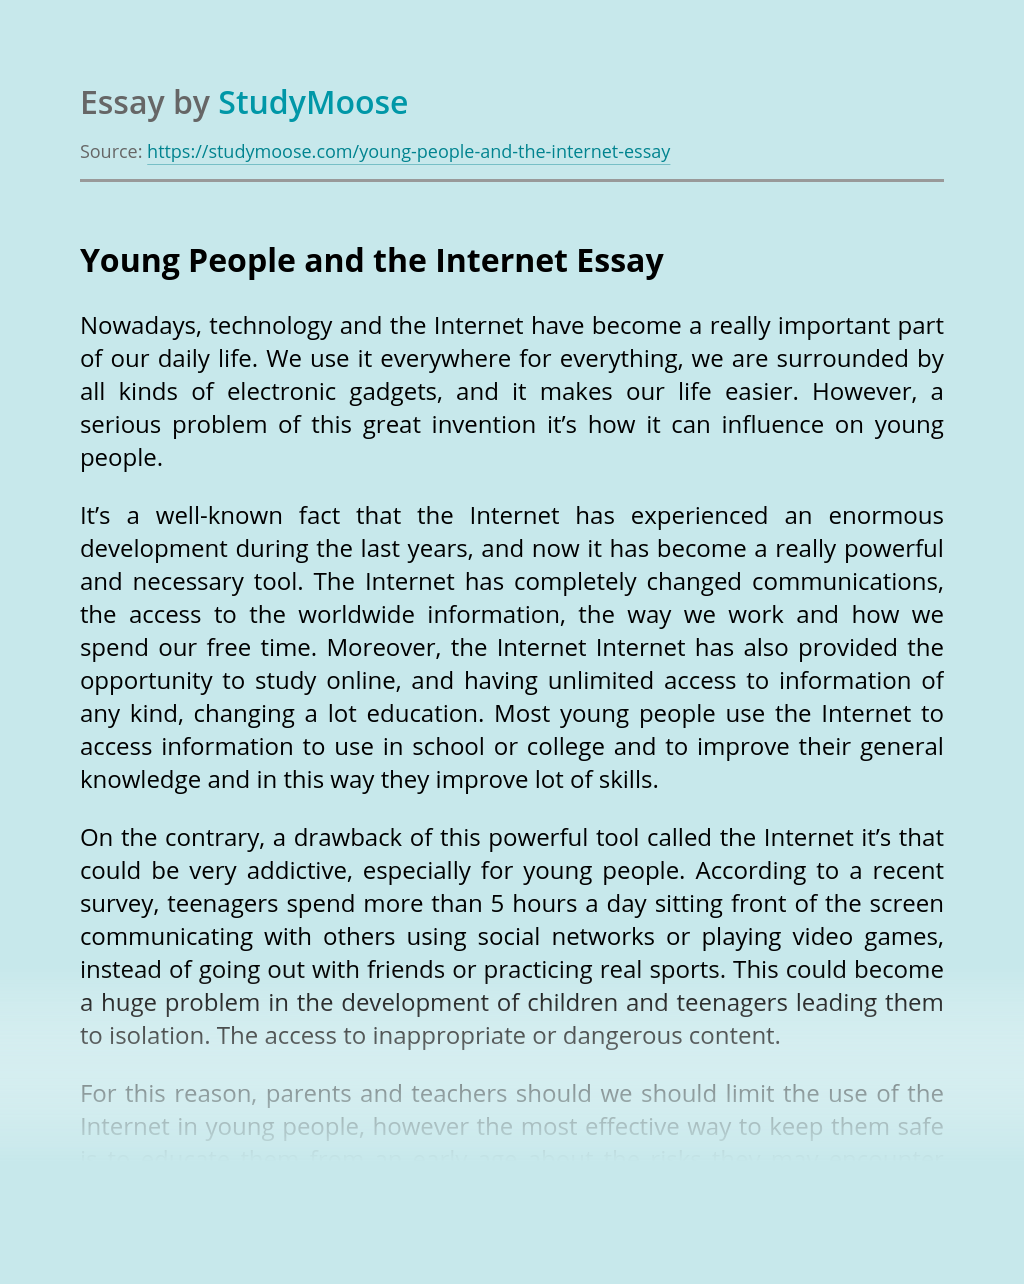 Young People and the Internet